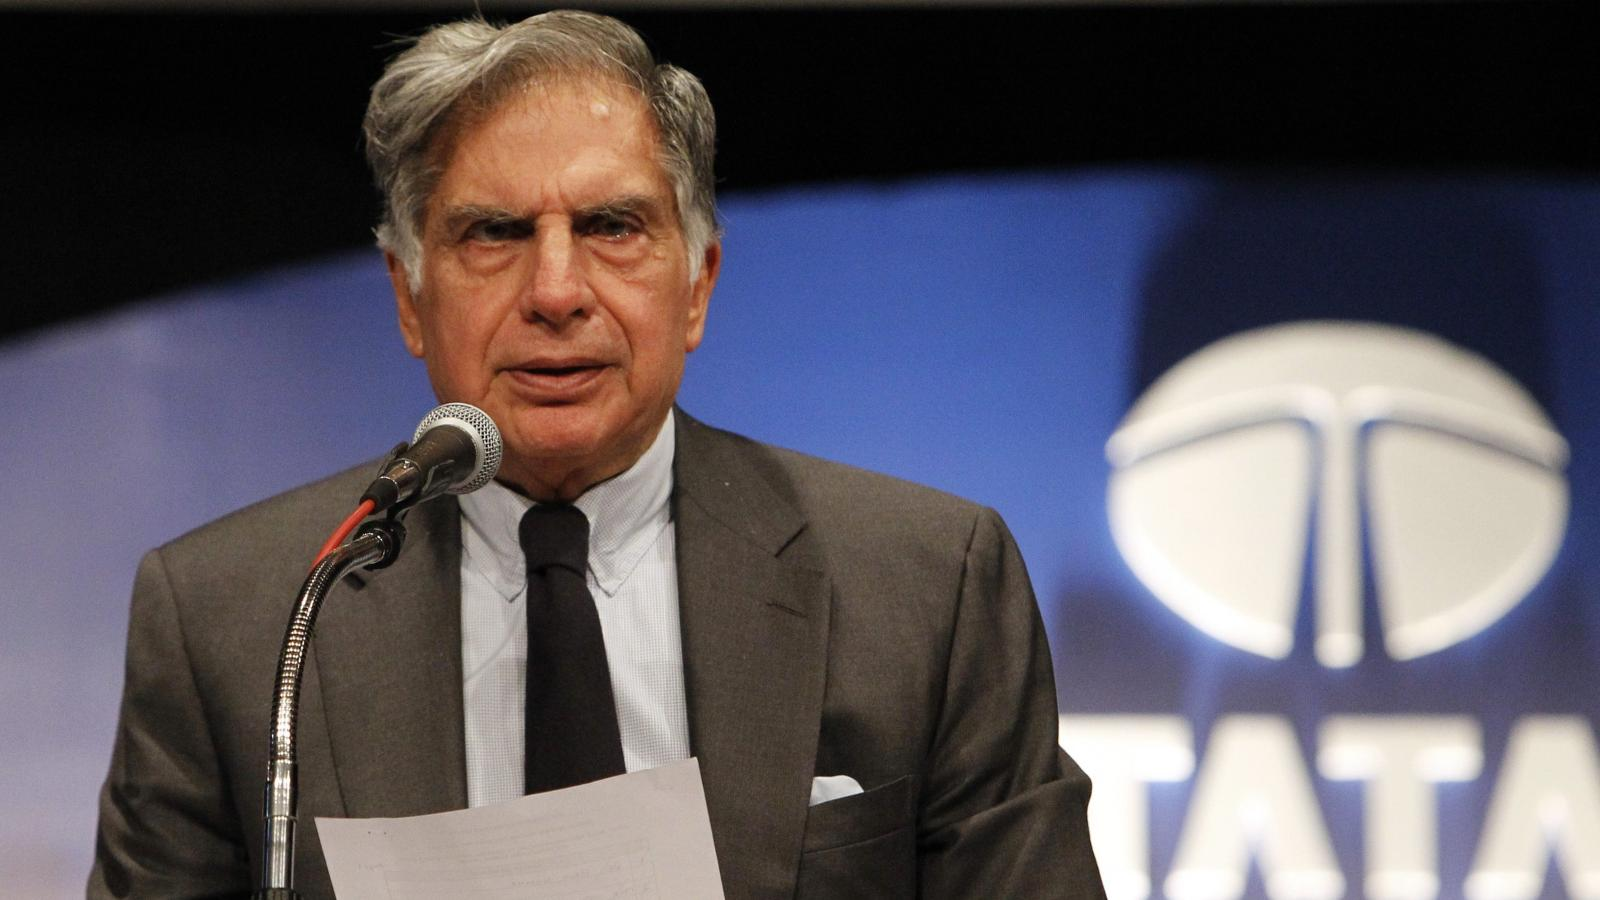 Ratan Tata Success Story: How Ratan Tata Built an Empire?